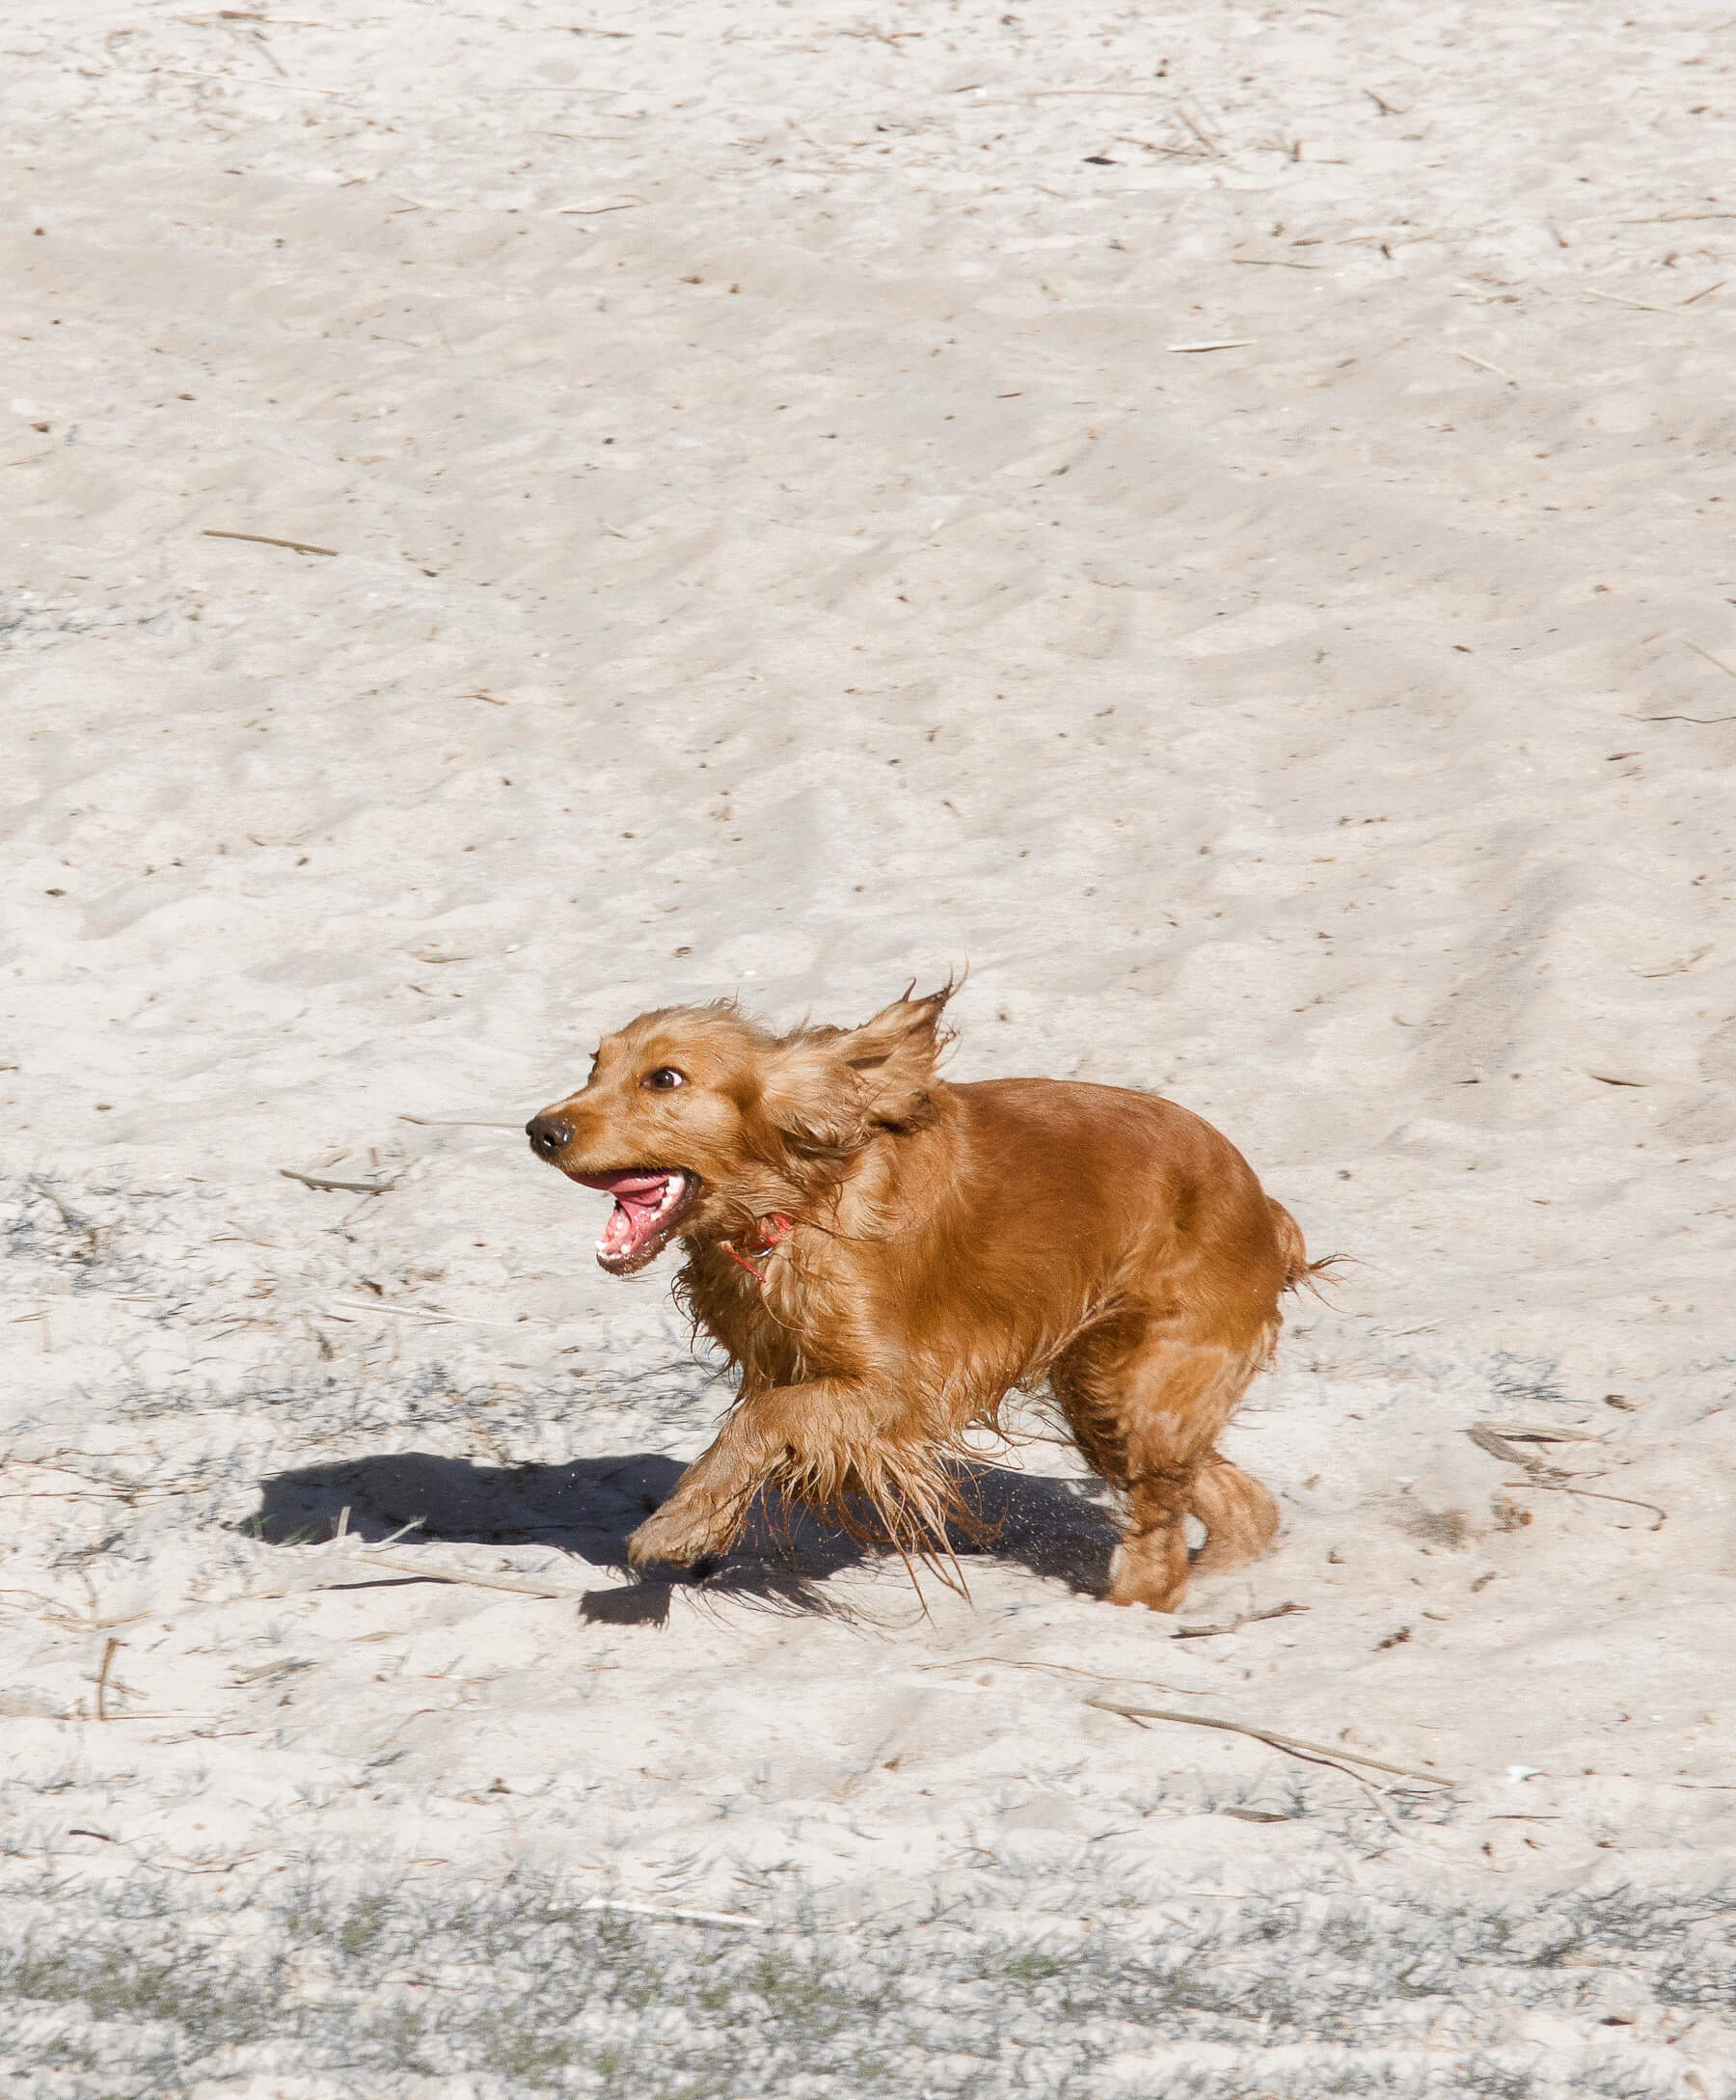 A brown, spanial dog running along the beach with mouth open and ears flapping